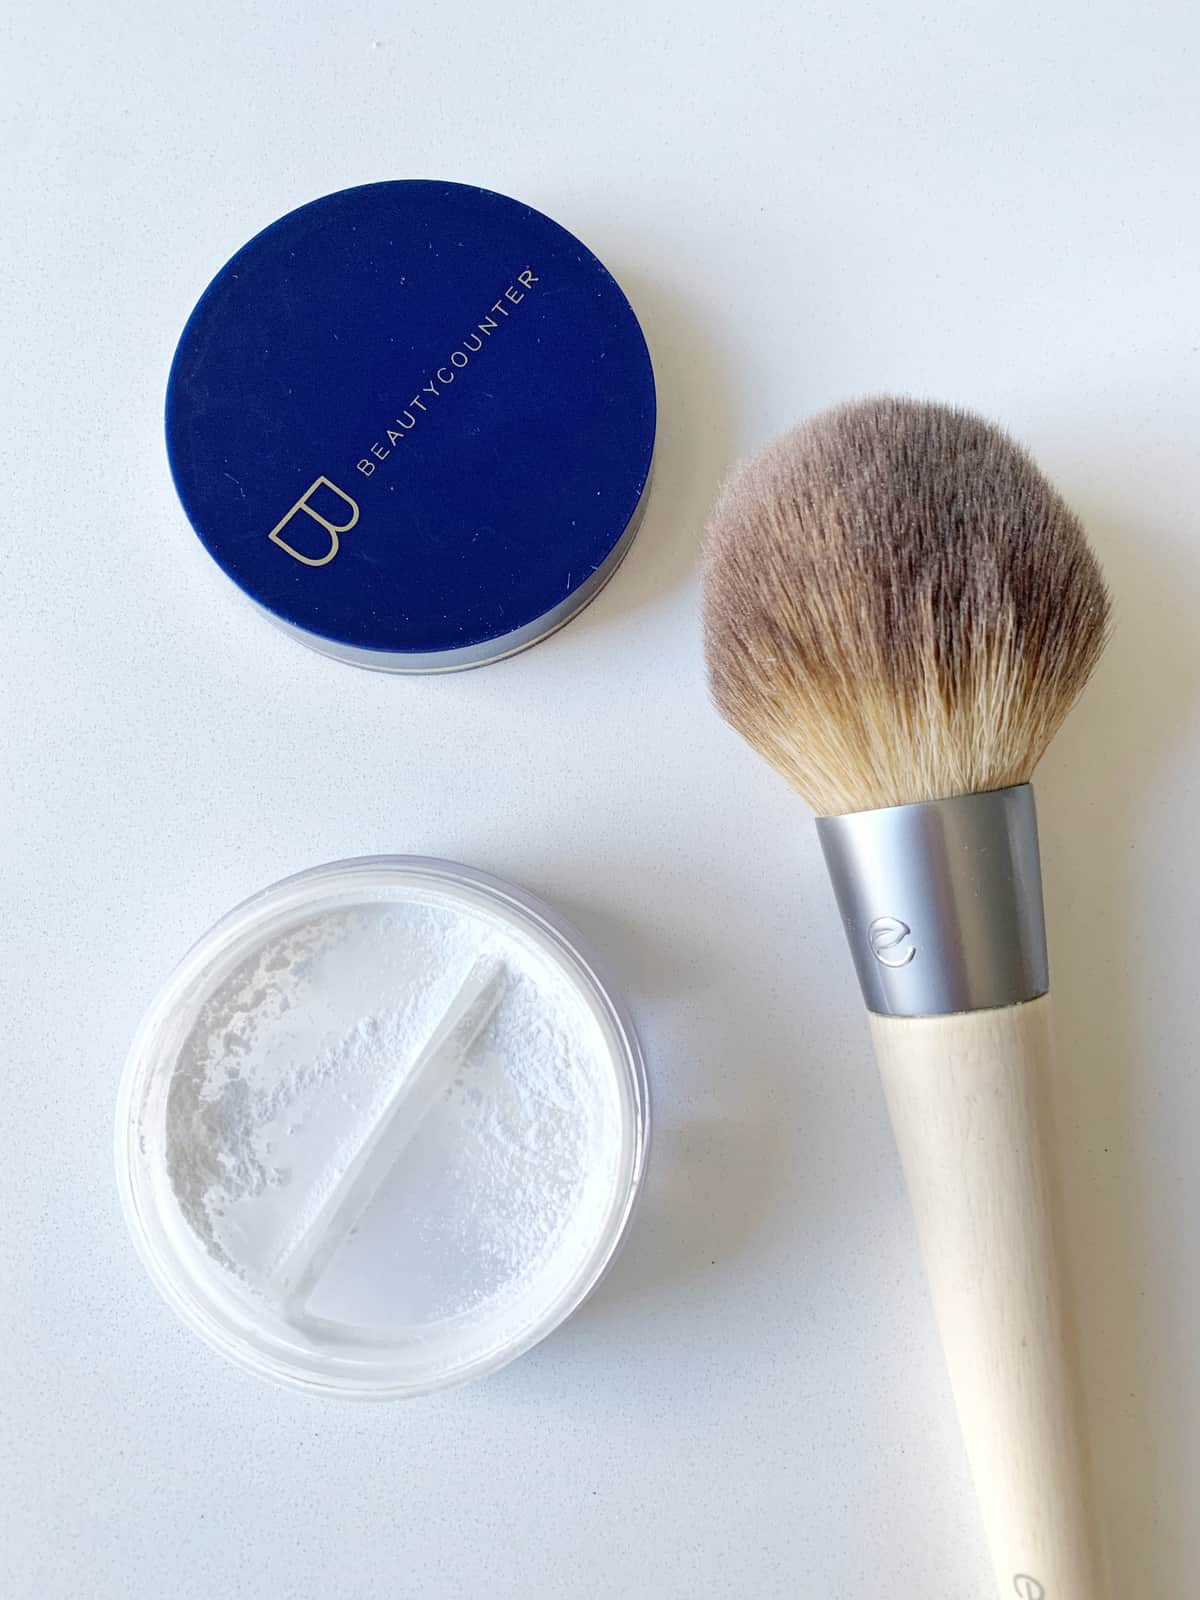 This Beautycounter Mattify Skin Finishing Powder is the perfect lightweight, oil absorbing powder for those who don't like to wear a lot of makeup.